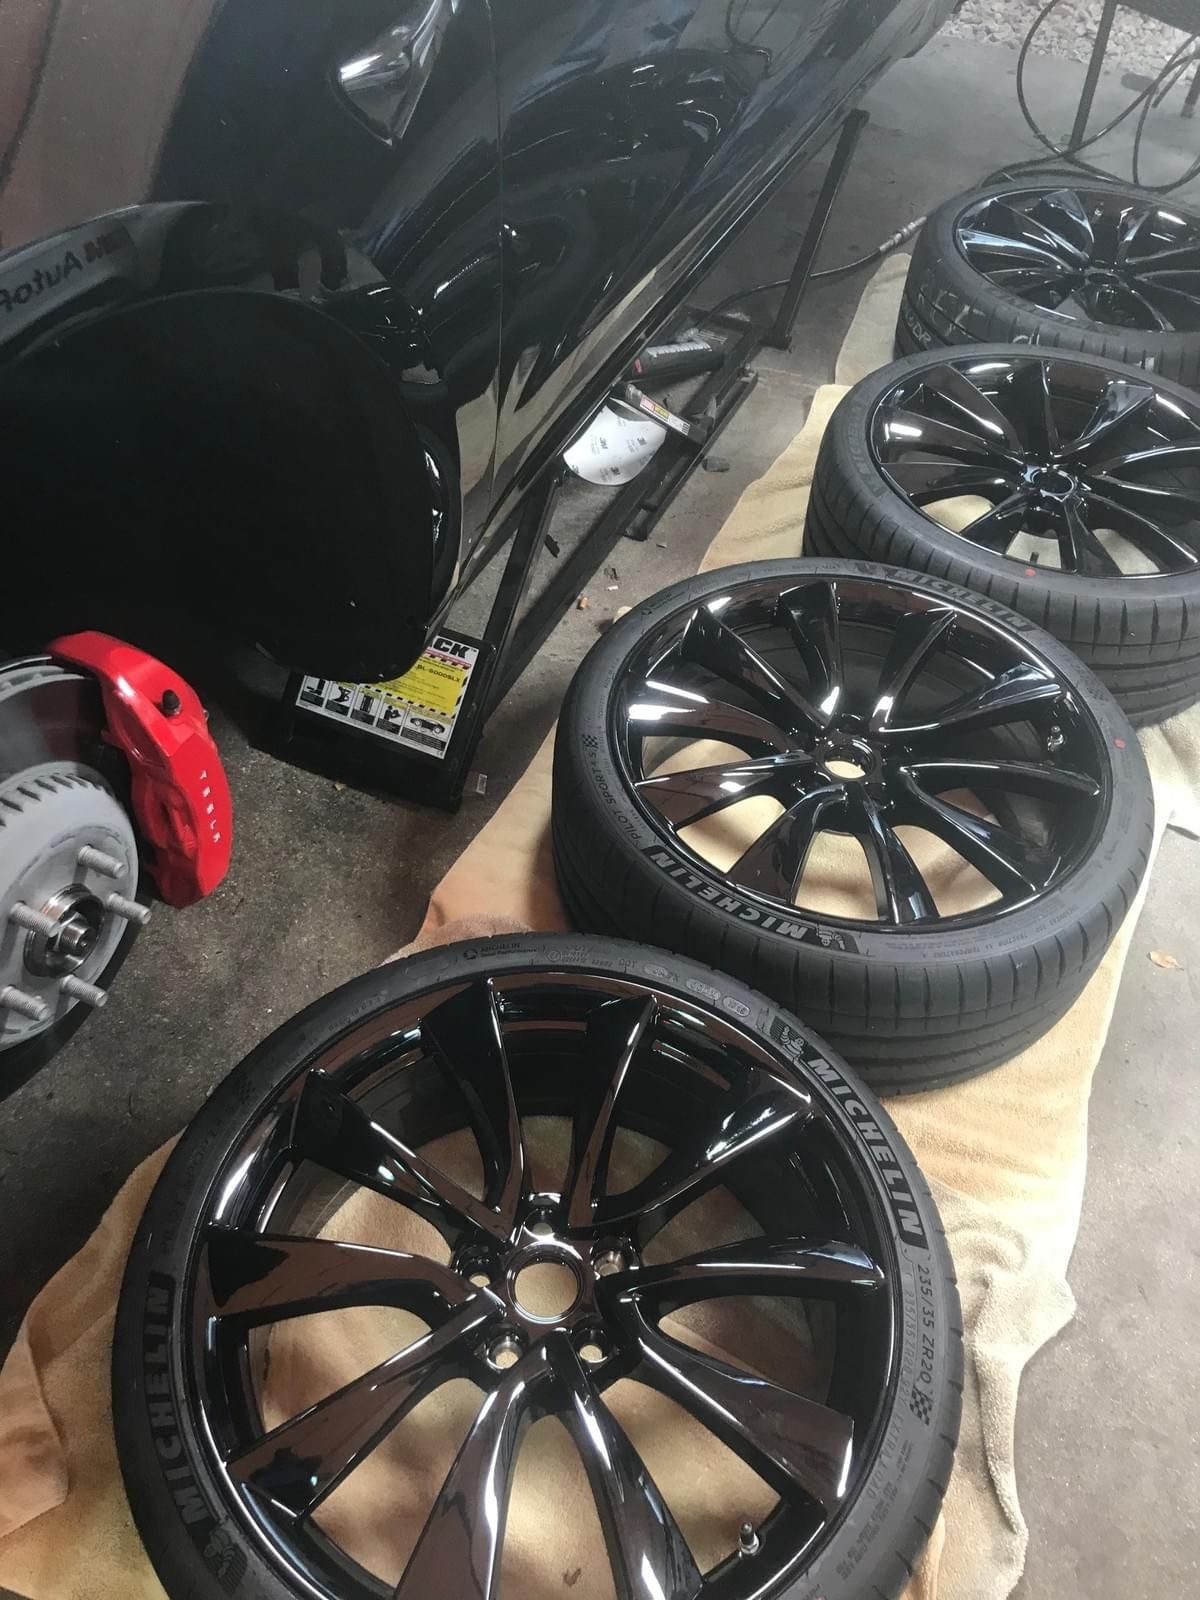 paint wheels black Miami, powder coating wheels in Miami